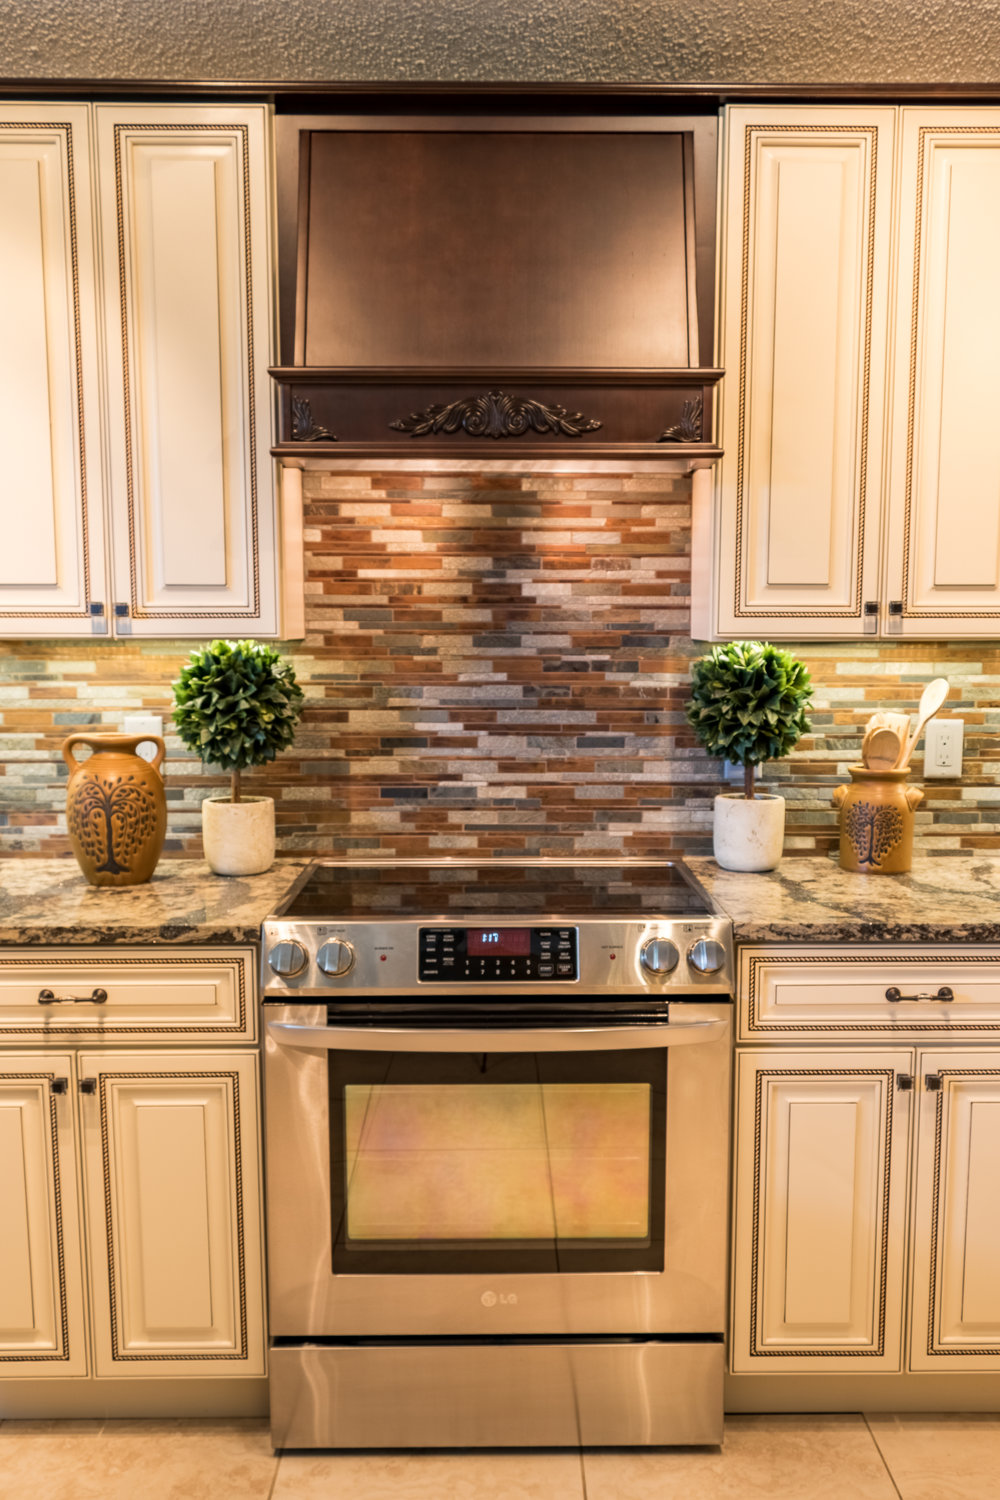 NOTI KITCHEN & BATH73.jpg